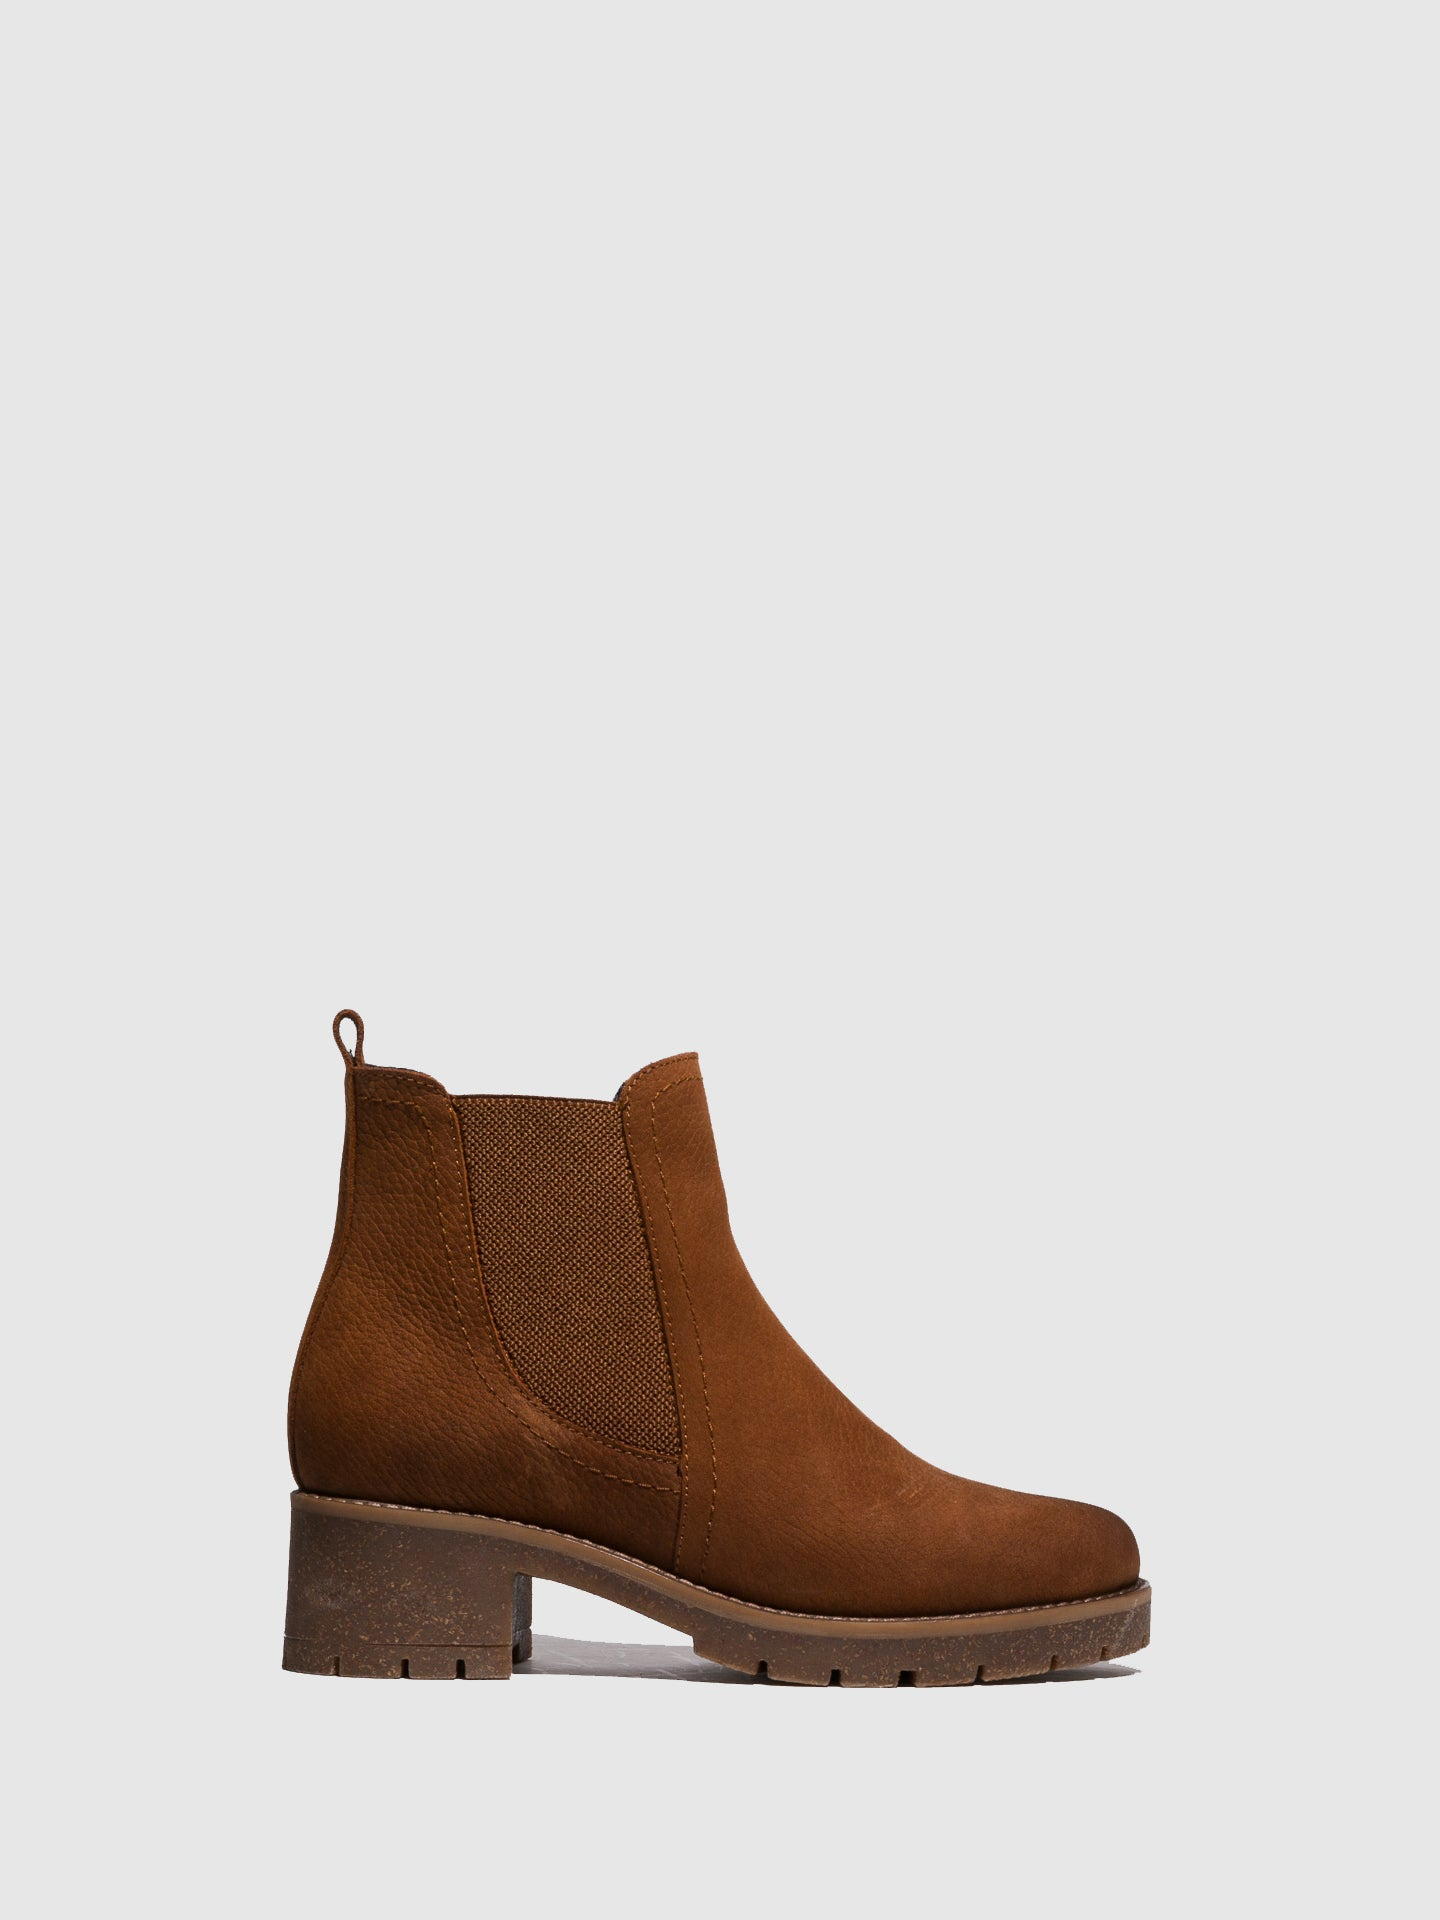 Fungi Camel Chelsea Ankle Boots